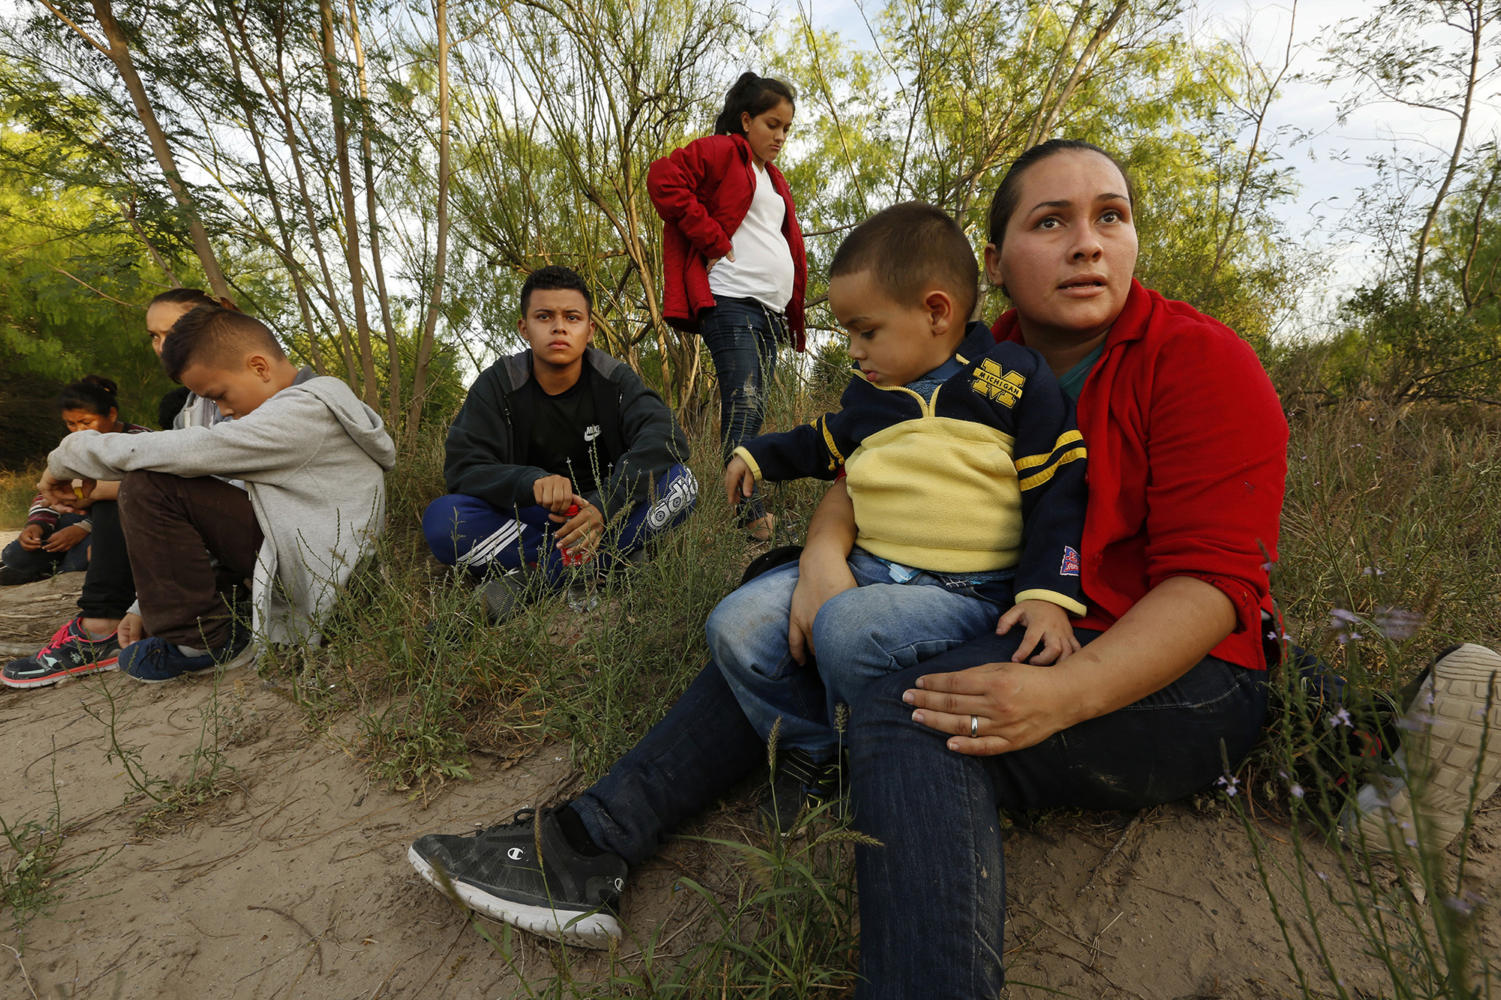 Hayti Alvarado, 26, holds her son Esteban Alvarado, 3, along with her daughter Gabriella Alvarado, 11, (not shown) after being detained near the Rio Grande River. The Alvarado family had to flee their country after Gabriella was threatened at school. A report suggests thousands more children were separated from their families by the Trump administration than previously disclosed.